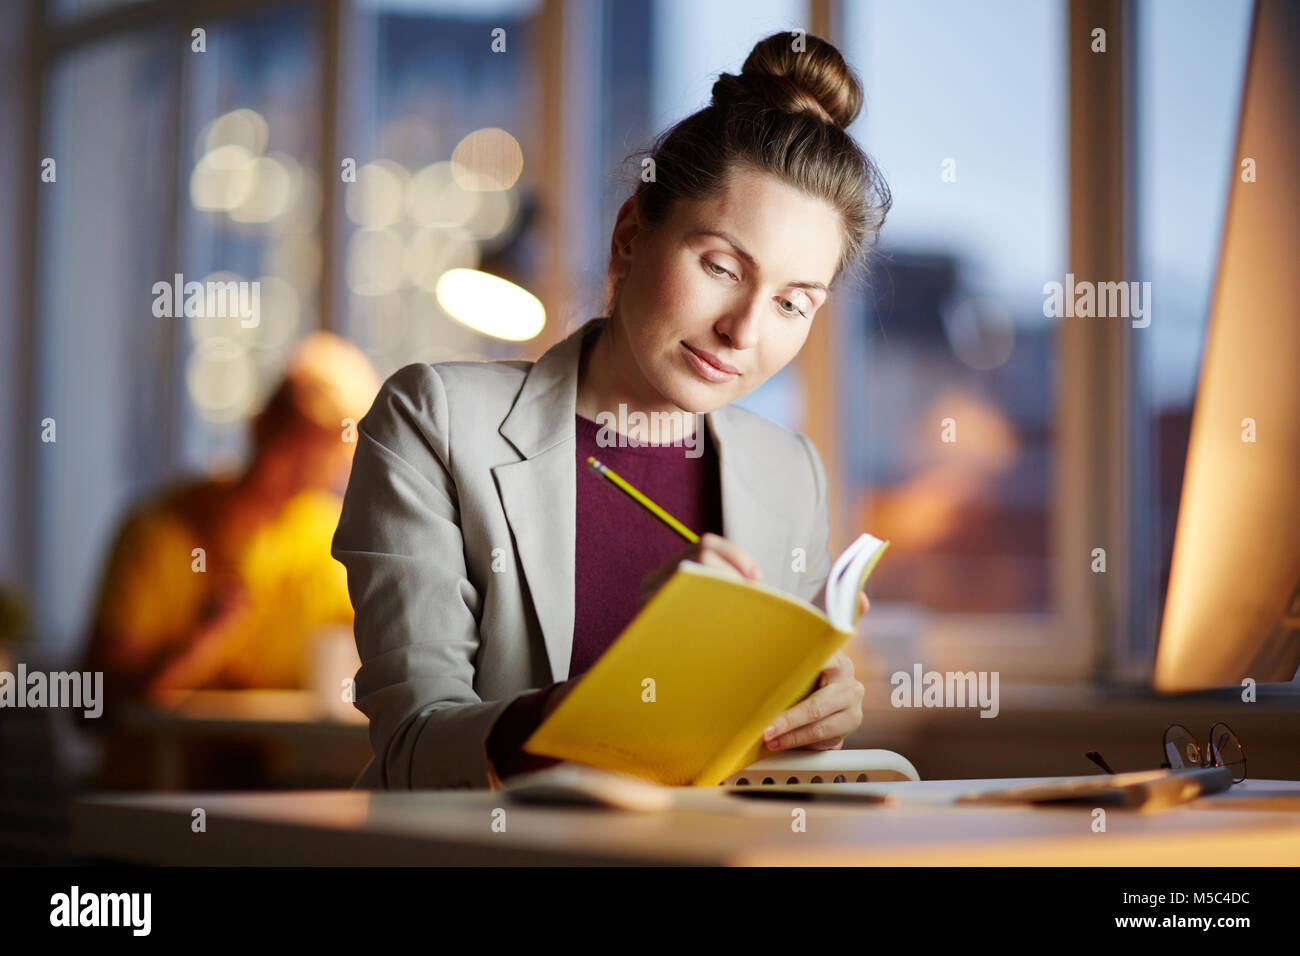 Working plan for tomorrow - Stock Image